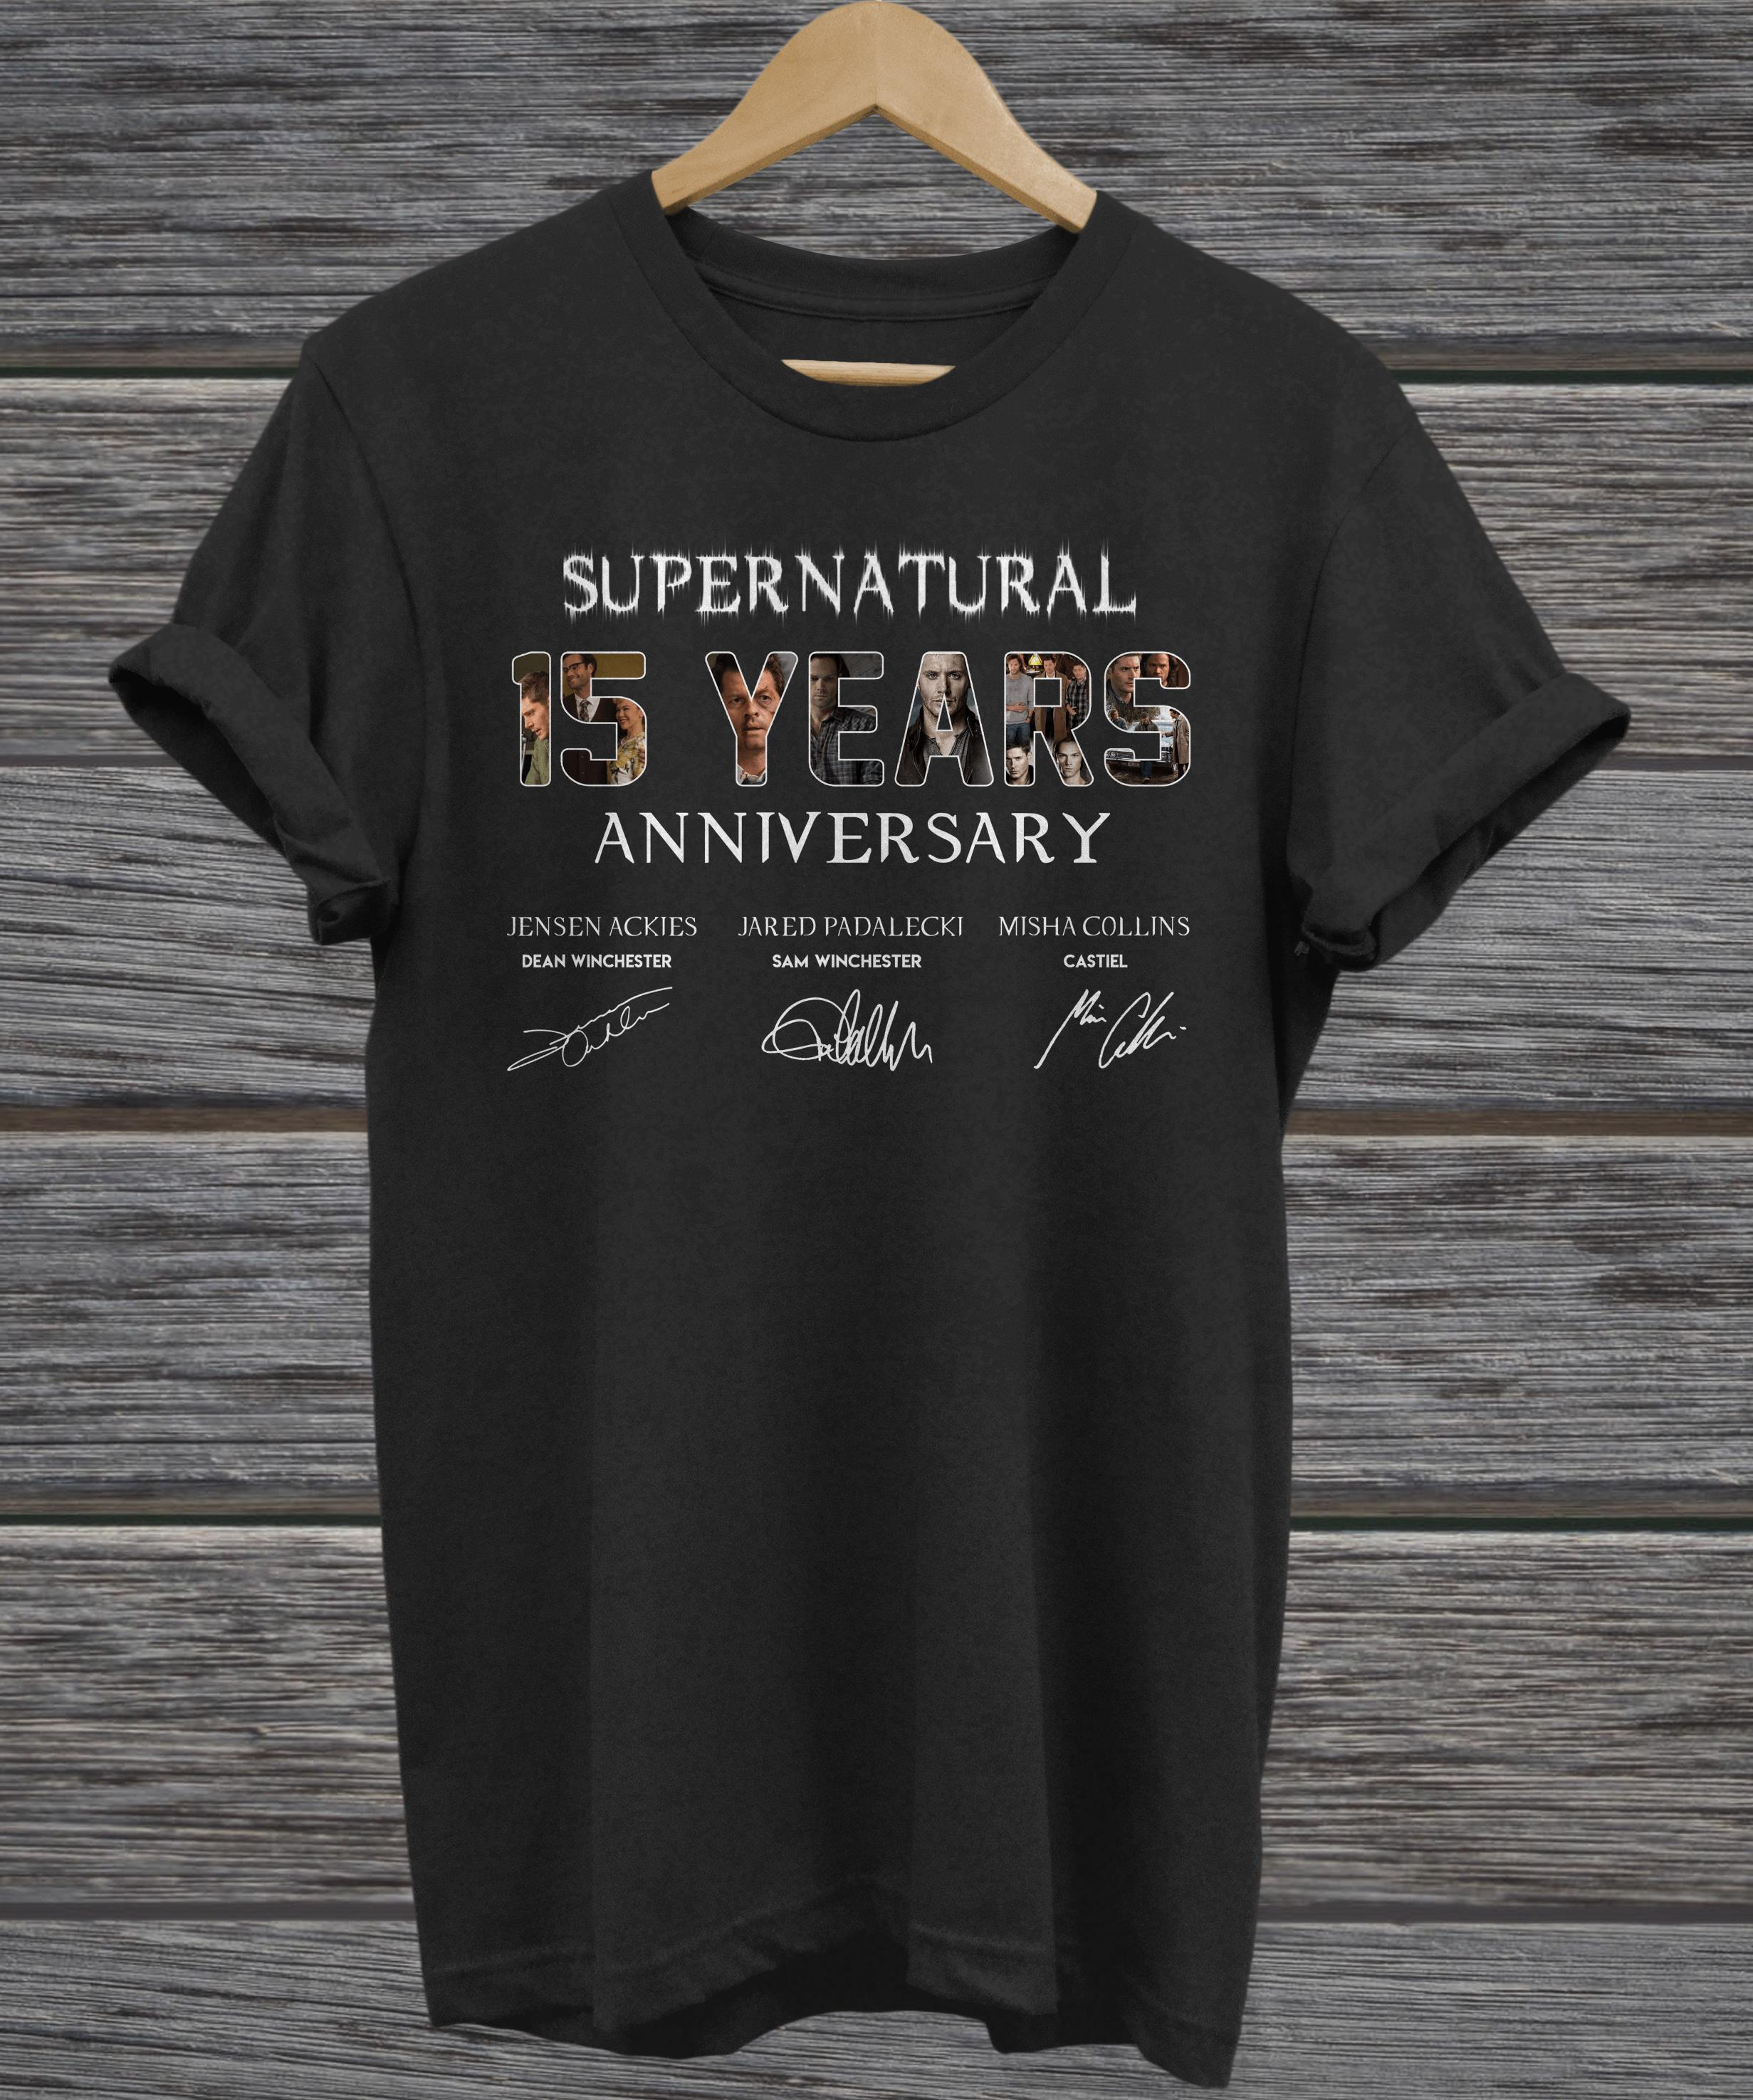 Supernatural 15 Years Anniversary All Signatures ladies tee